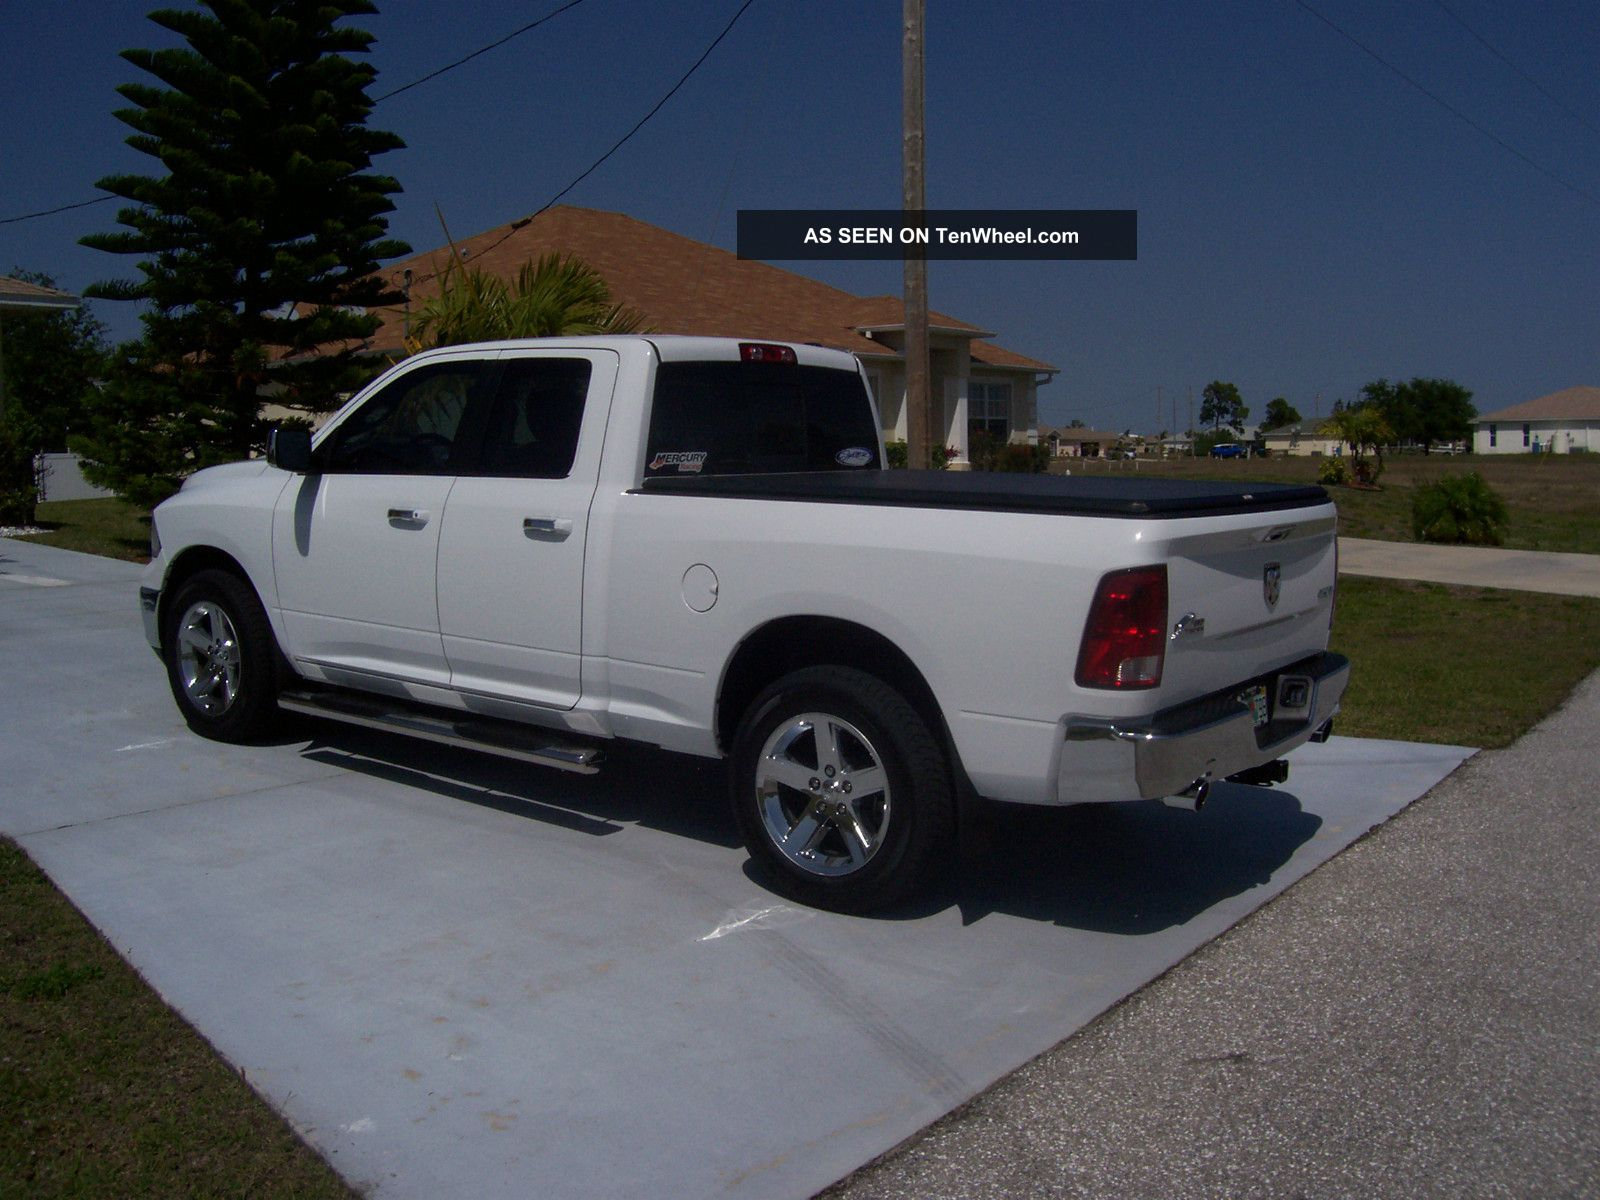 2012 dodge ram 1500 quad cab 4x4 slt big horn ram 1500 photo 3. Black Bedroom Furniture Sets. Home Design Ideas